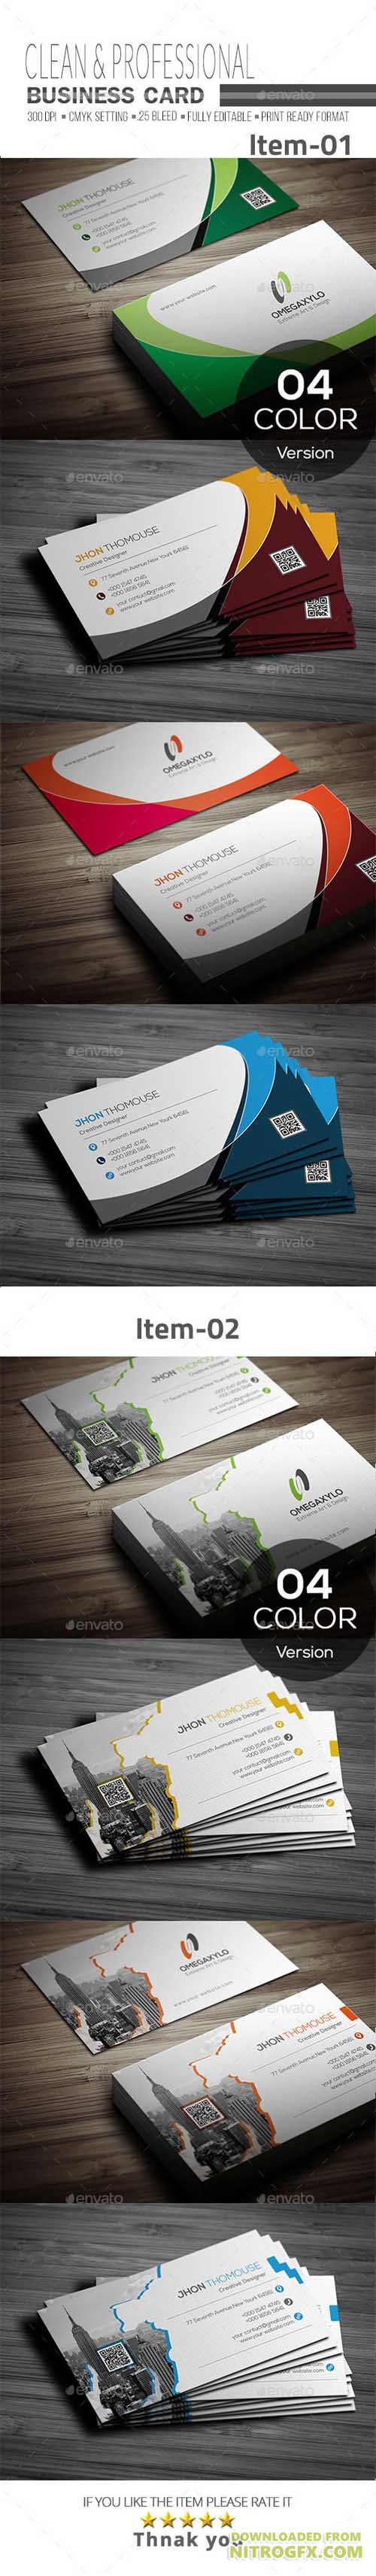 GraphicRiver - Business Card Bundle 2 In 1 20402377